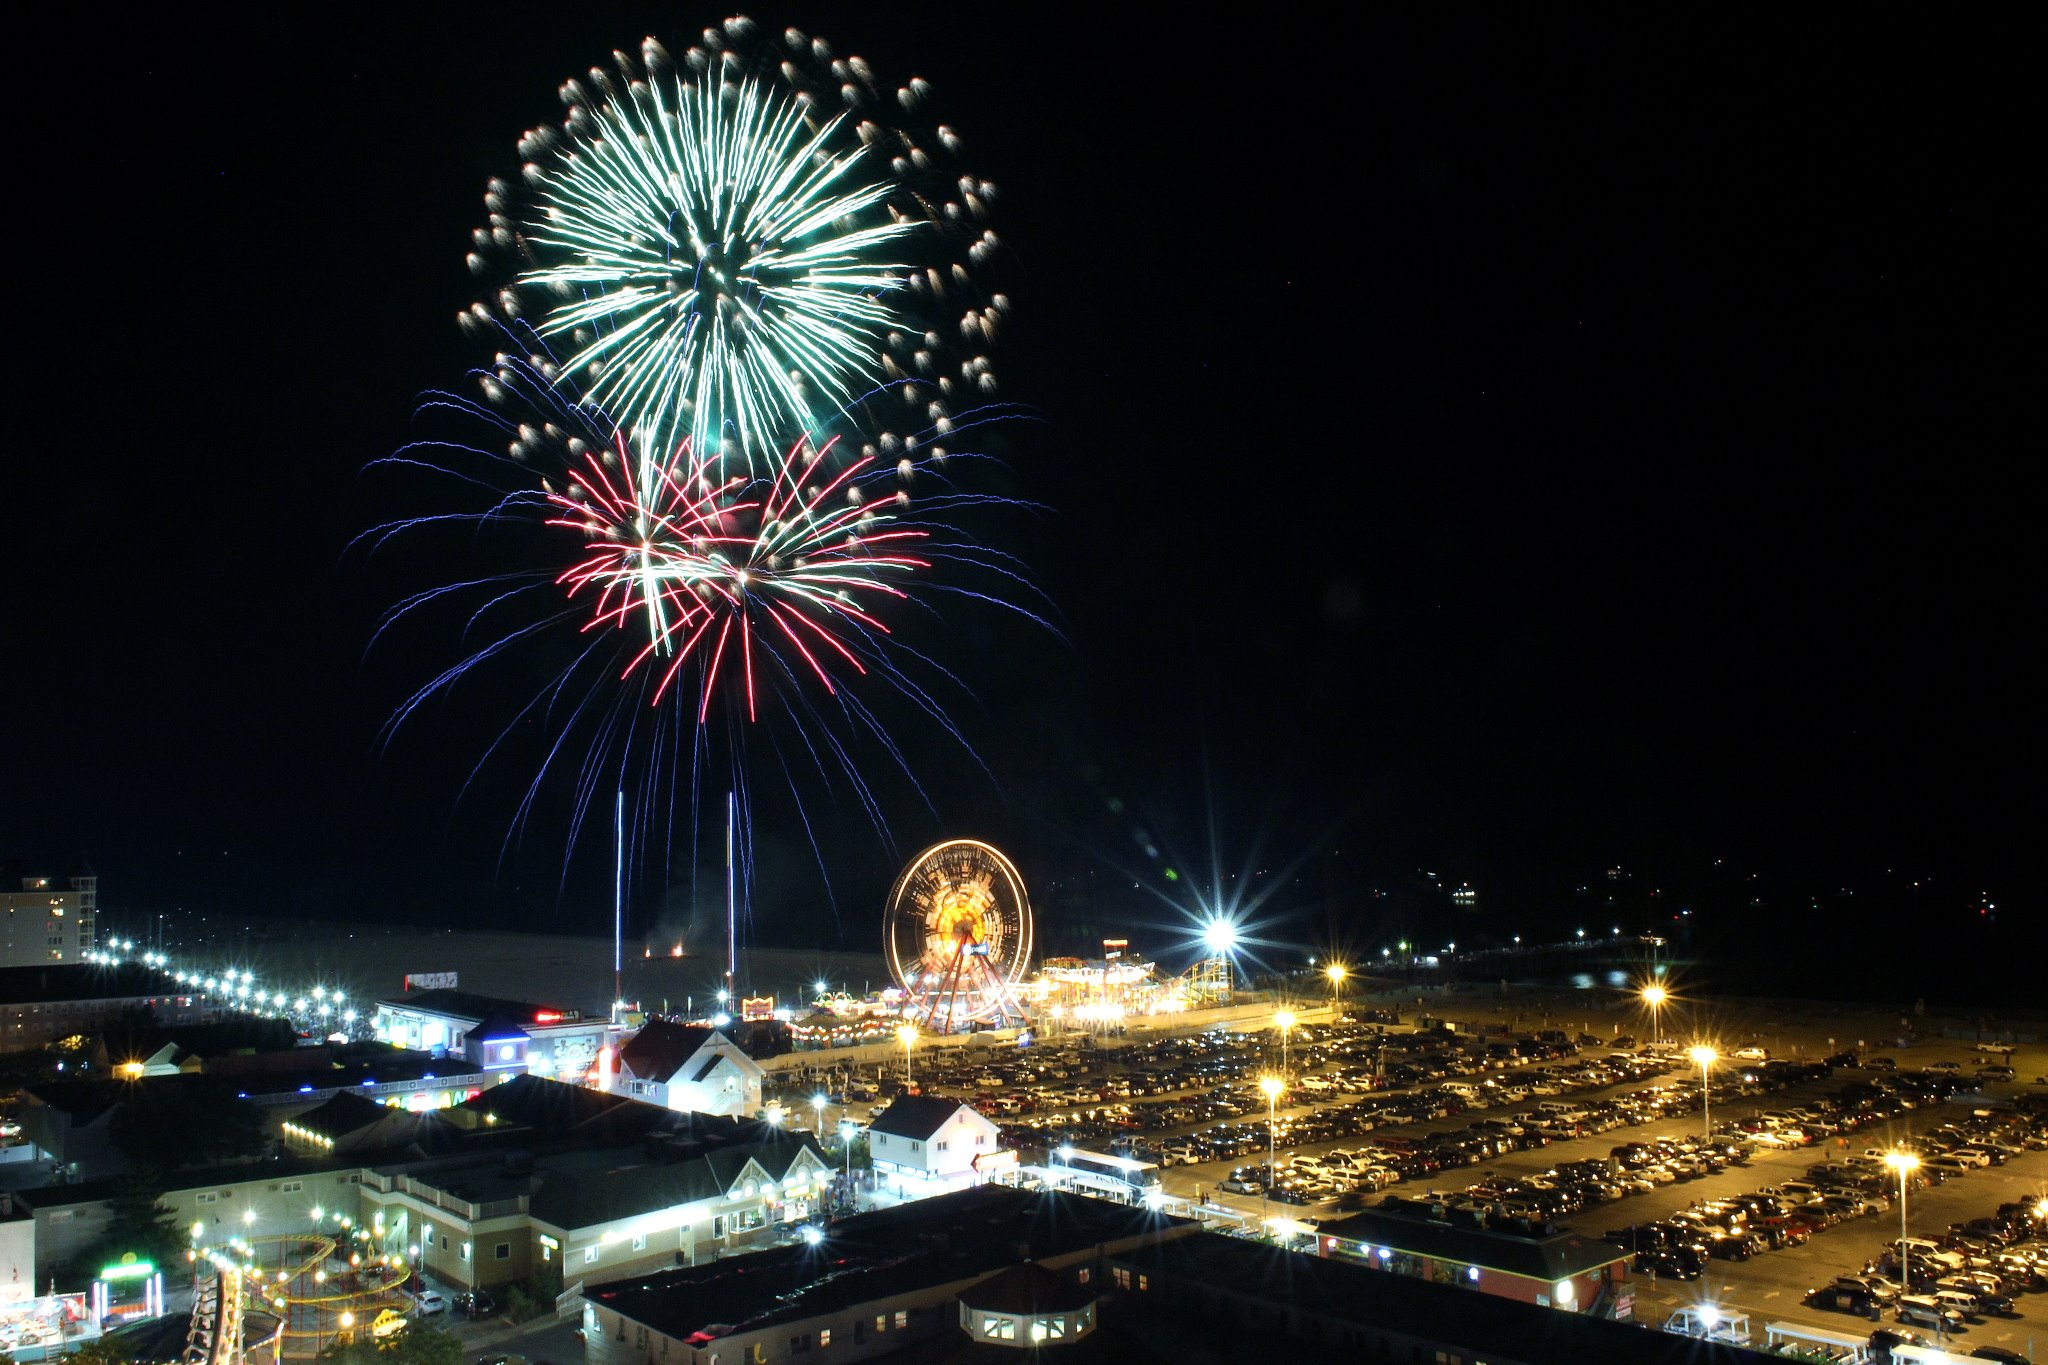 The downtown fireworks display is pictured during a previous holiday celebration. Photo by Bernie Walls